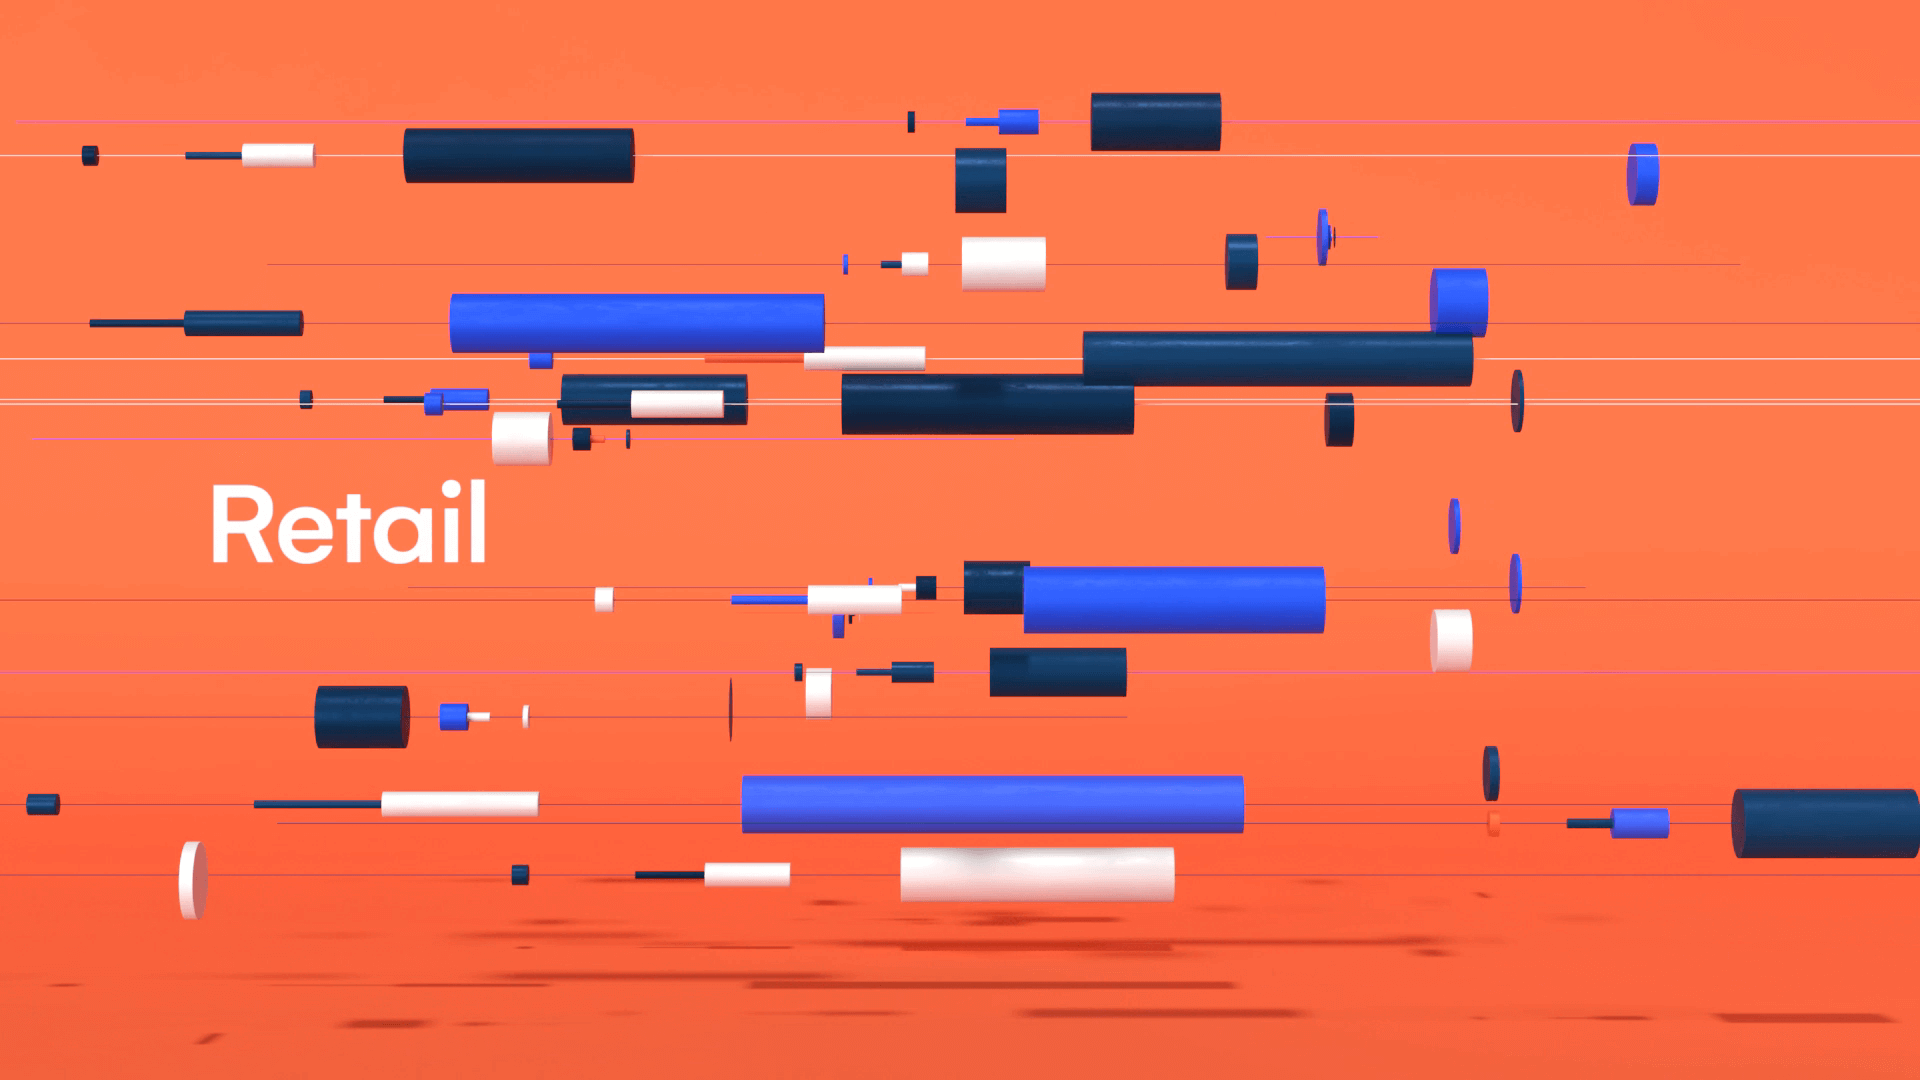 Orange 3D visual for Motion design with geometric and colorful shapes